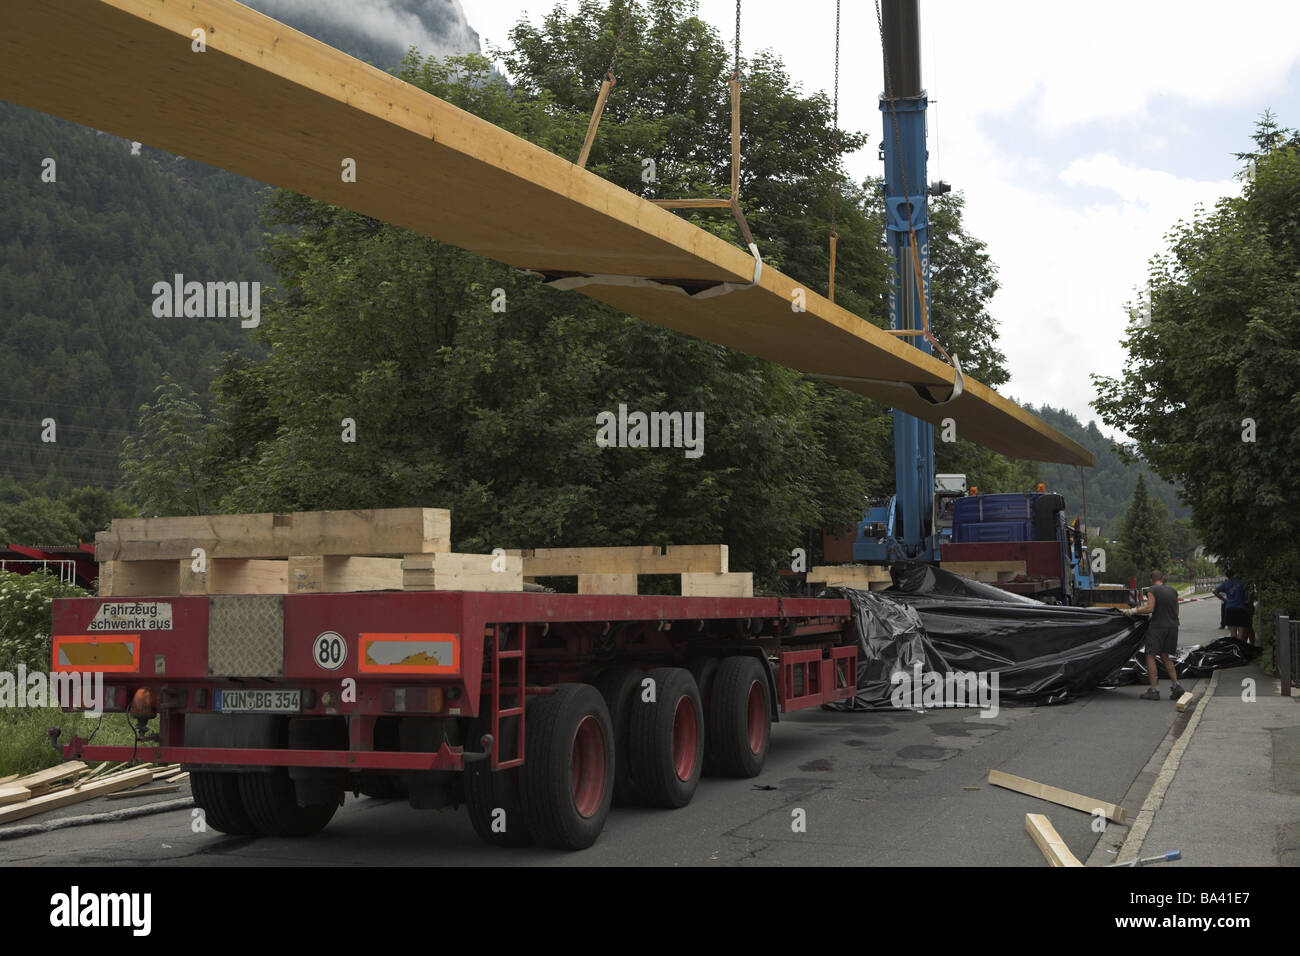 Elegant Street Truck Crane Arm Wood Bearers Man Lifts Back Opinion Building Site  Construction Works House Construction Construction